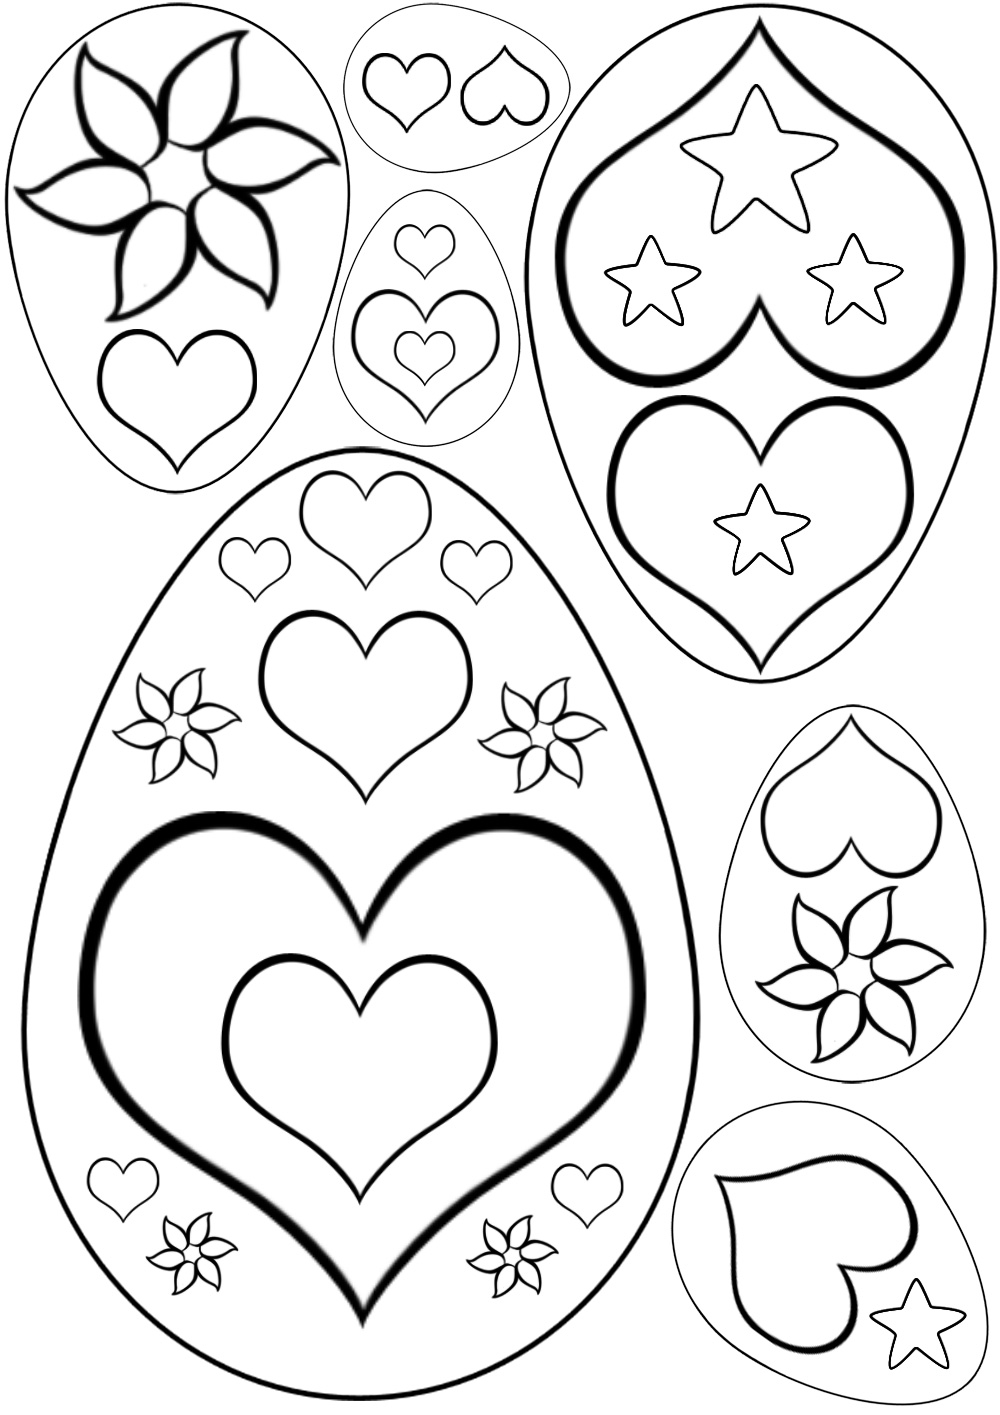 Heart Patterned Easter Eggs | Rooftop Post Printables